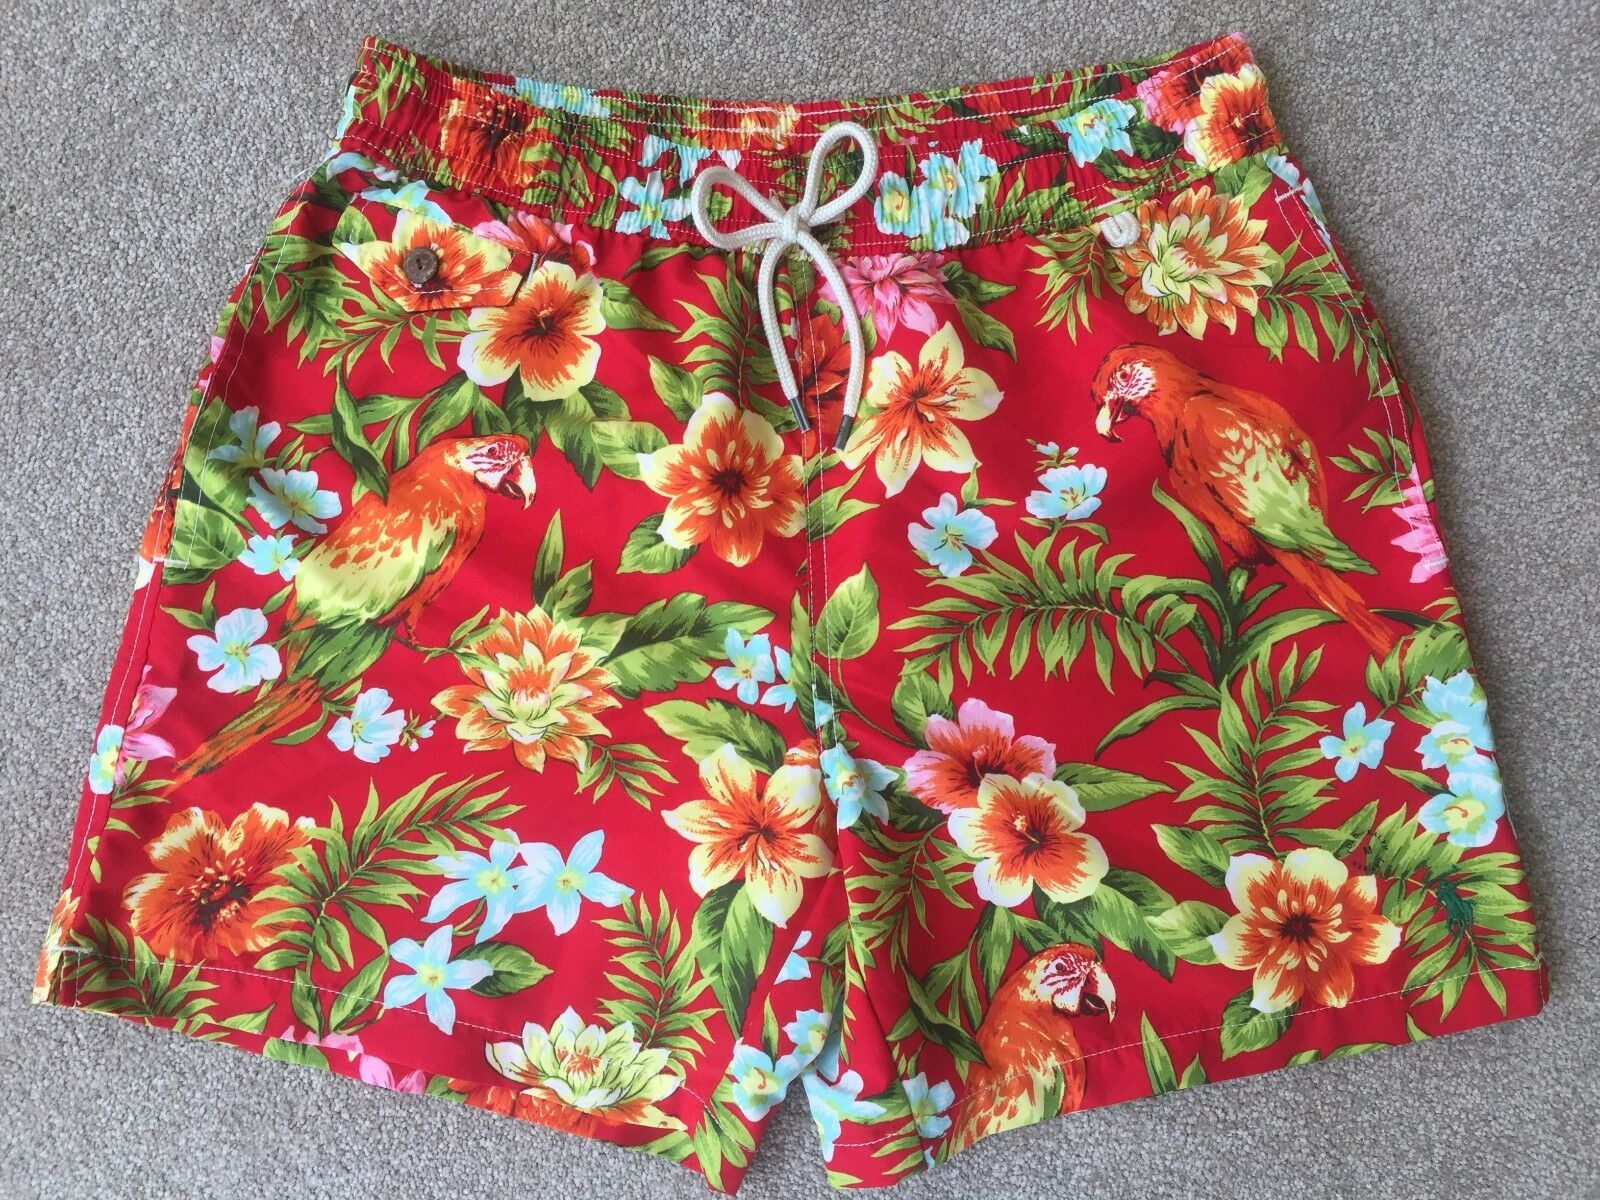 POLO RALPH LAUREN RED & GREEN PARred FLORAL TRAVELER SWIM SHORTS SIZE M 30 -32